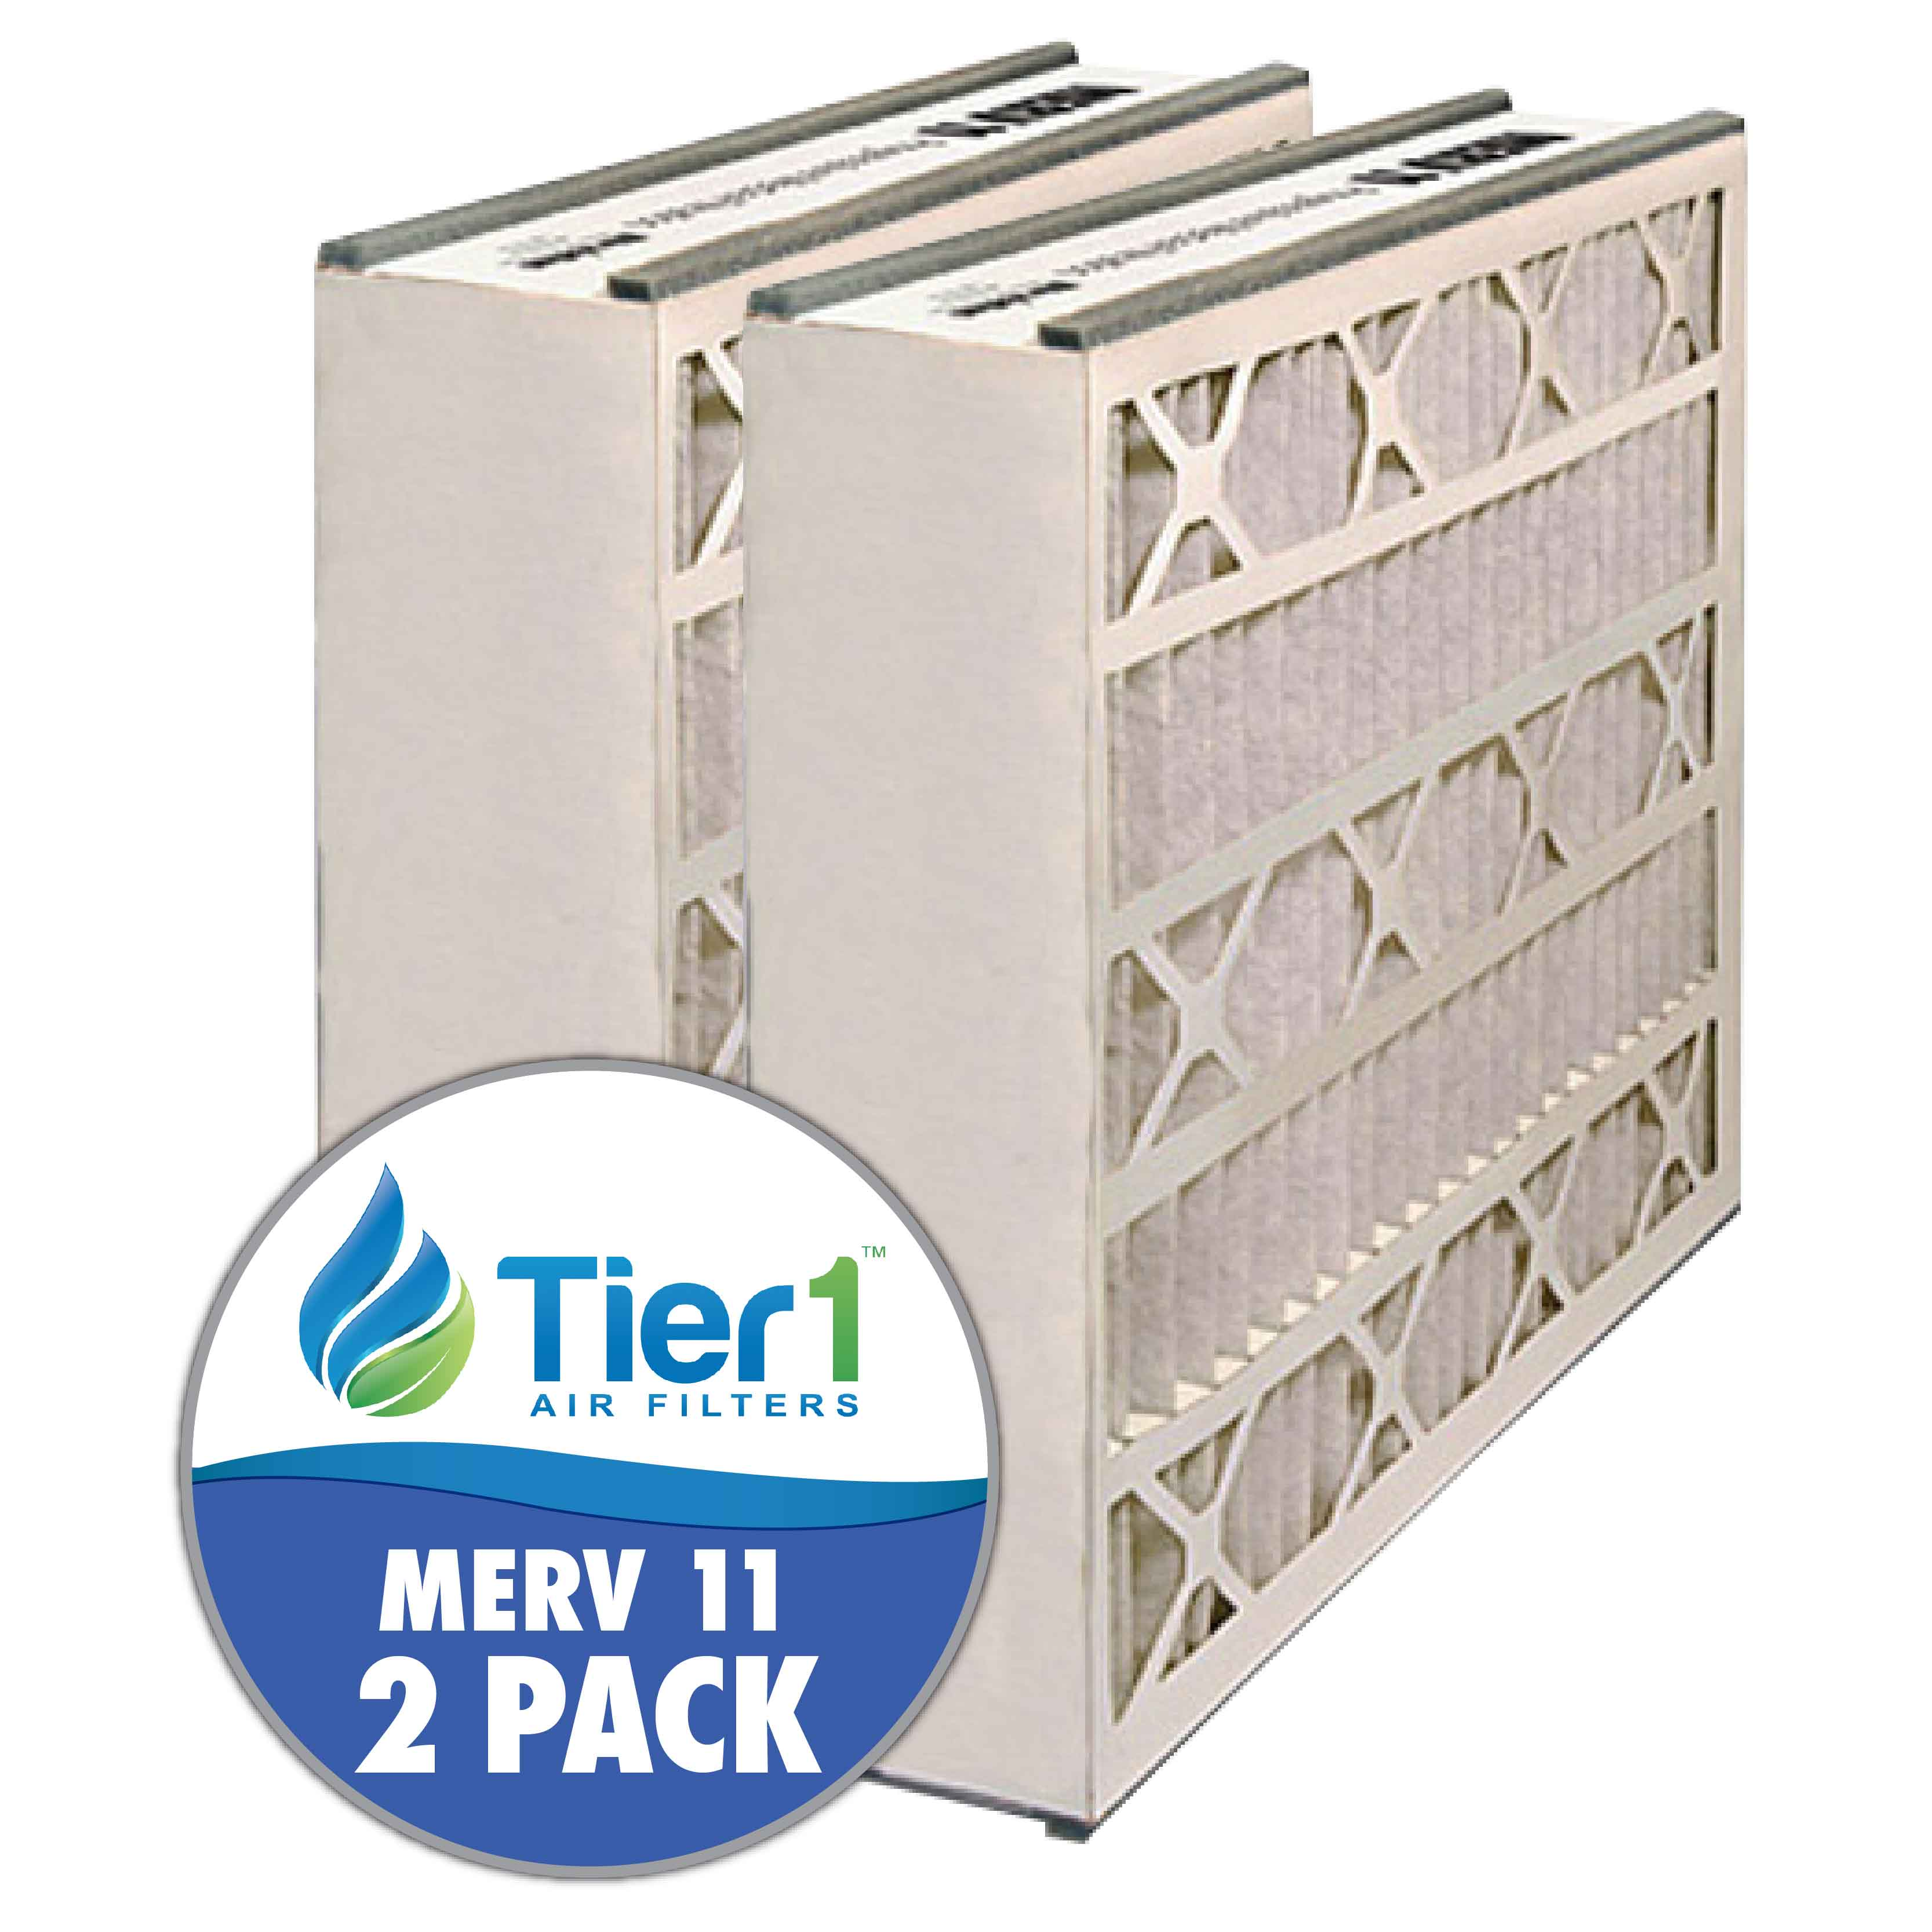 16x25x5 255649-105 & 259112-105 Trion / Air Bear MERV 11 Comparable Air Filter by Tier1 (2-pack) TIER1-RDPAB051625M11